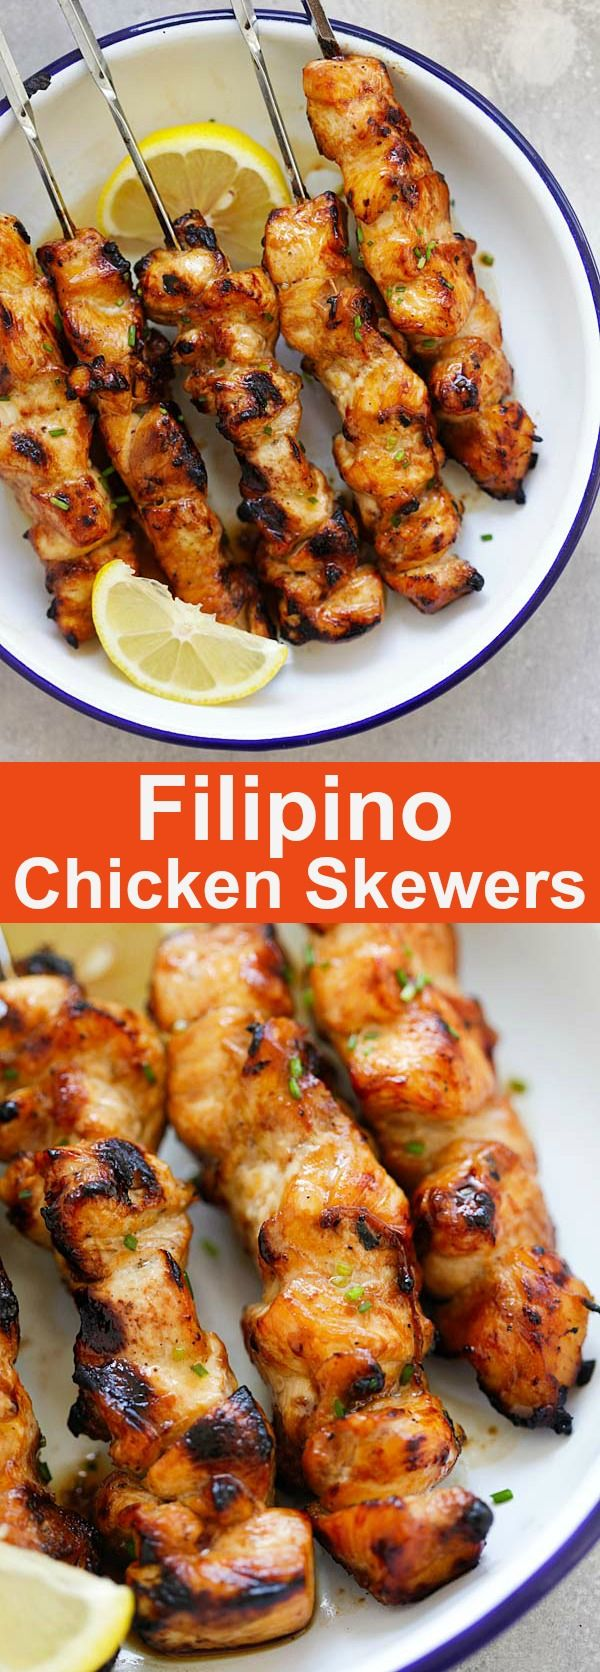 Filipino Chicken Skewers – juicy, moist and savory chicken kebab seasoned Filipino-style with soy sauce, banana ketchup and garlic. Absolutely delicious and a crowd pleaser | rasamalaysia.com